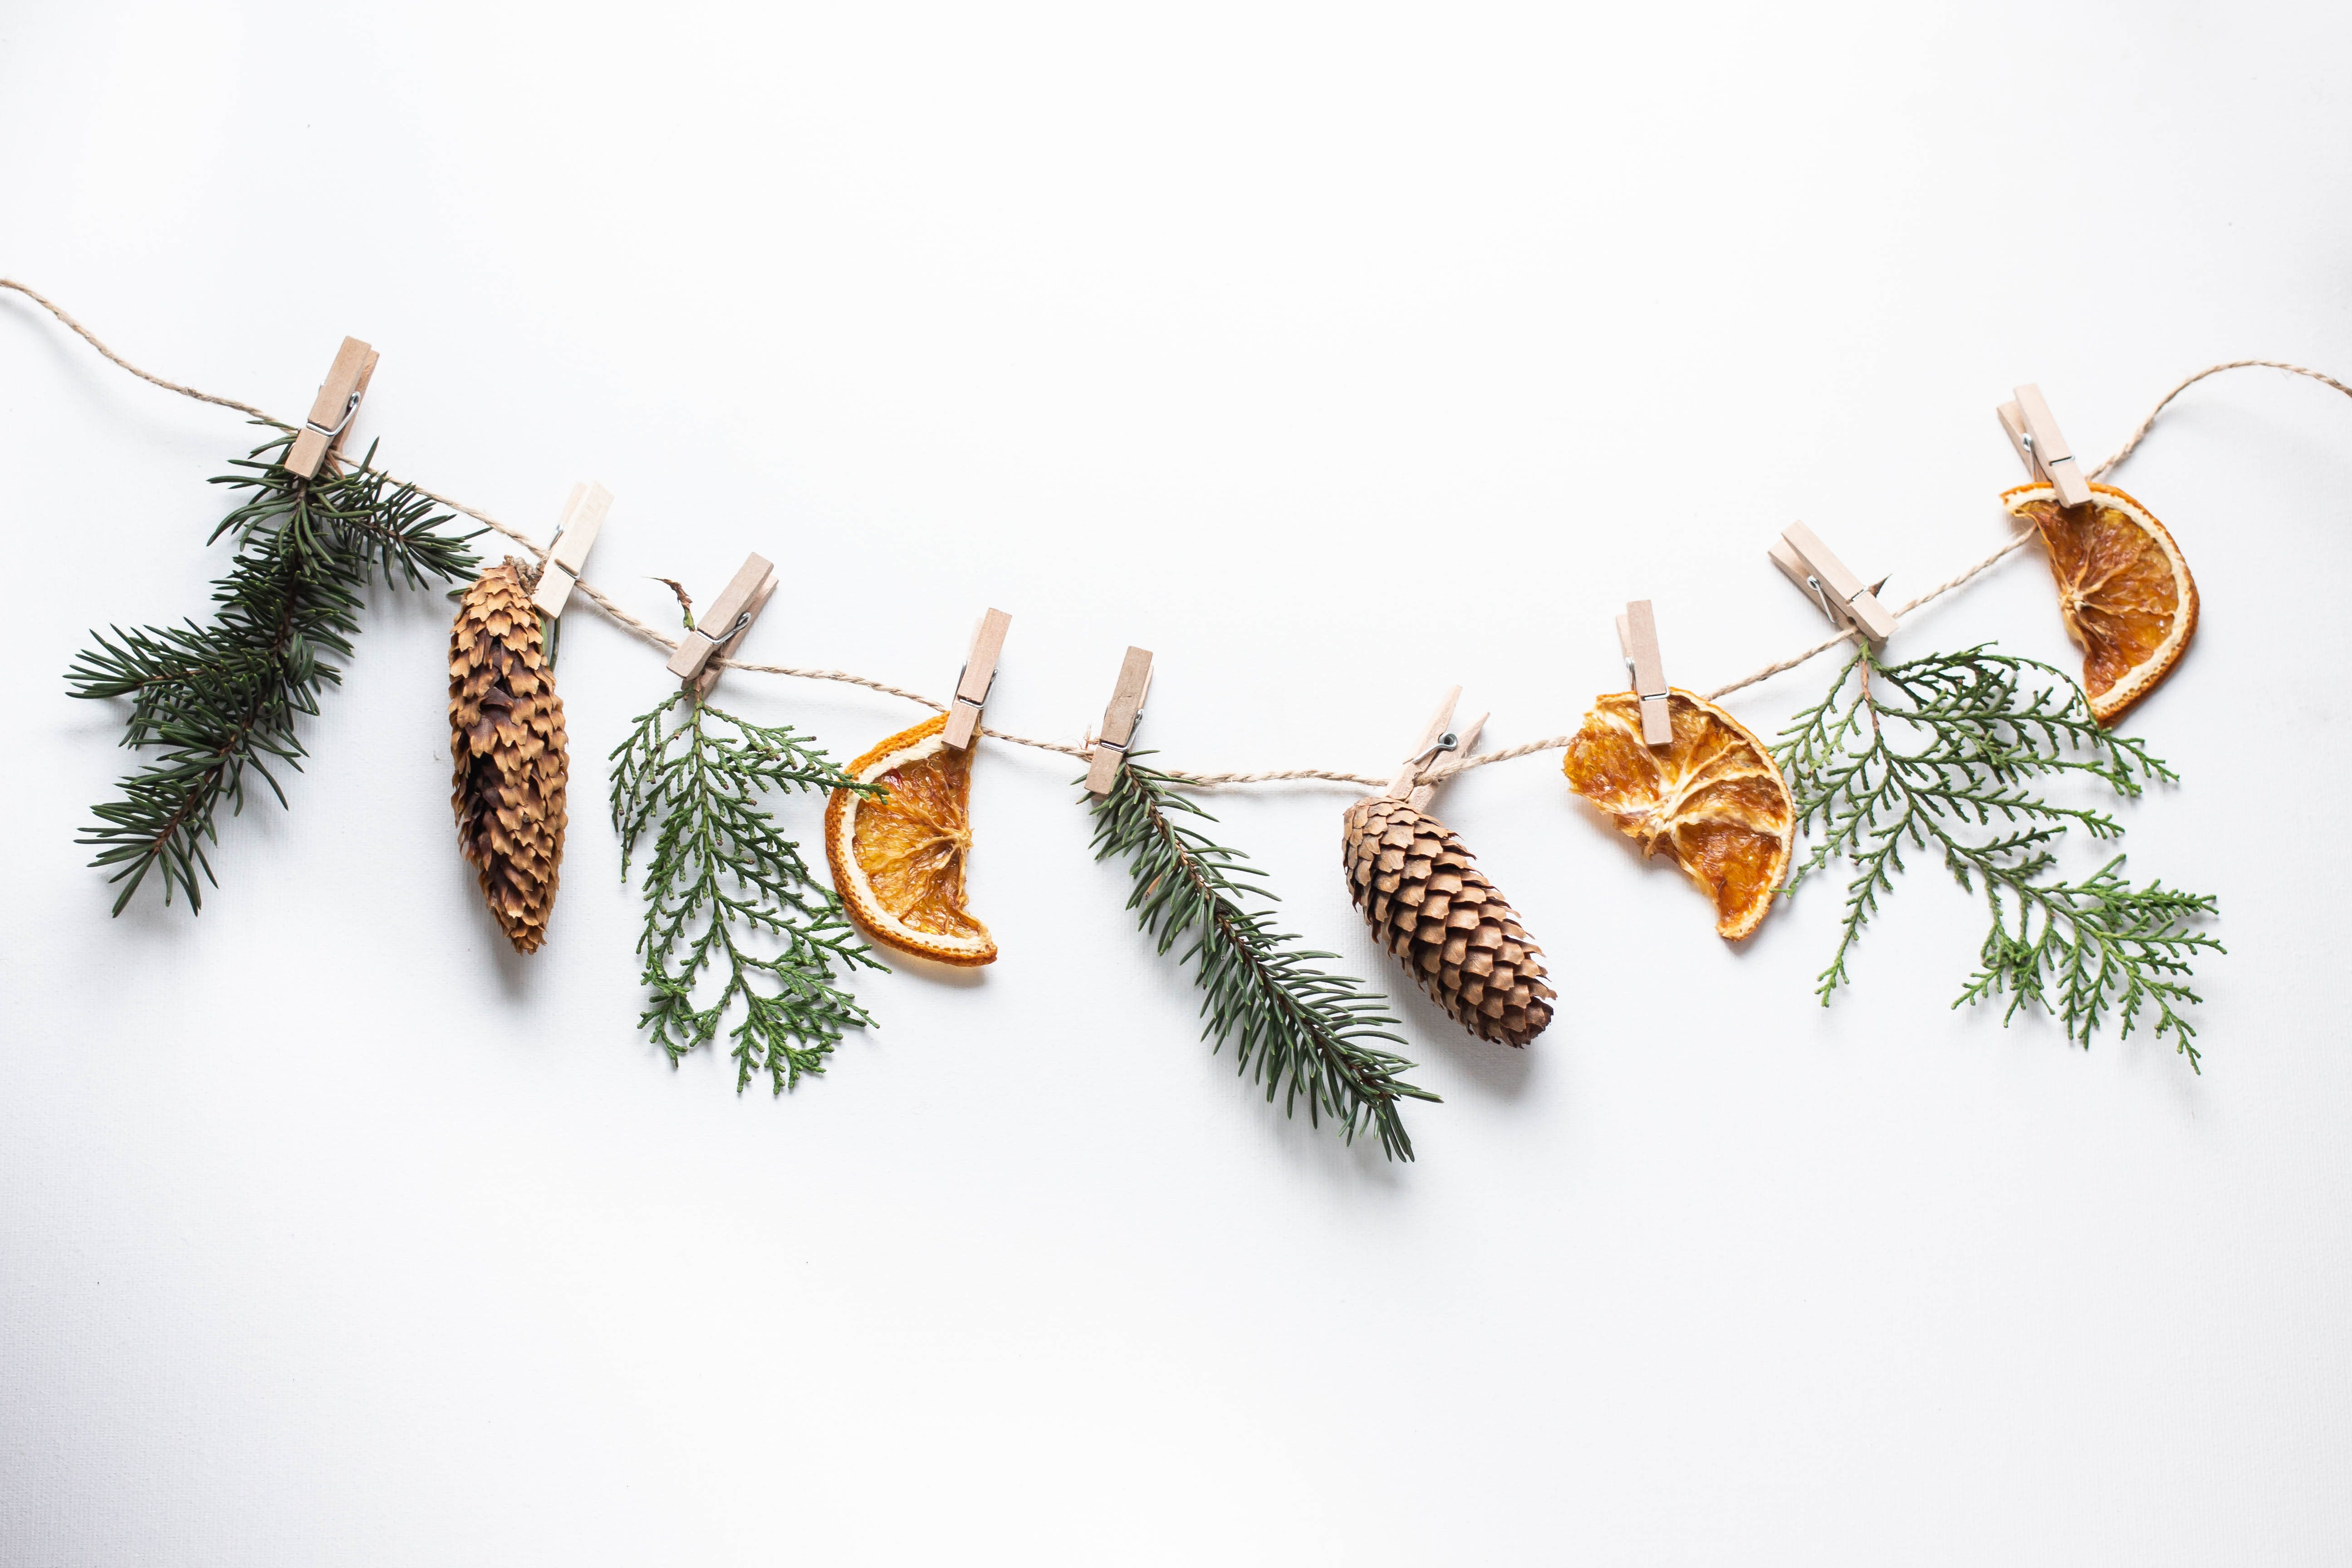 Christmas composition. Christmas garland made of tree branches, cones, dried orange slices and thuja branches on white background. Flat lay, top view, copy space.